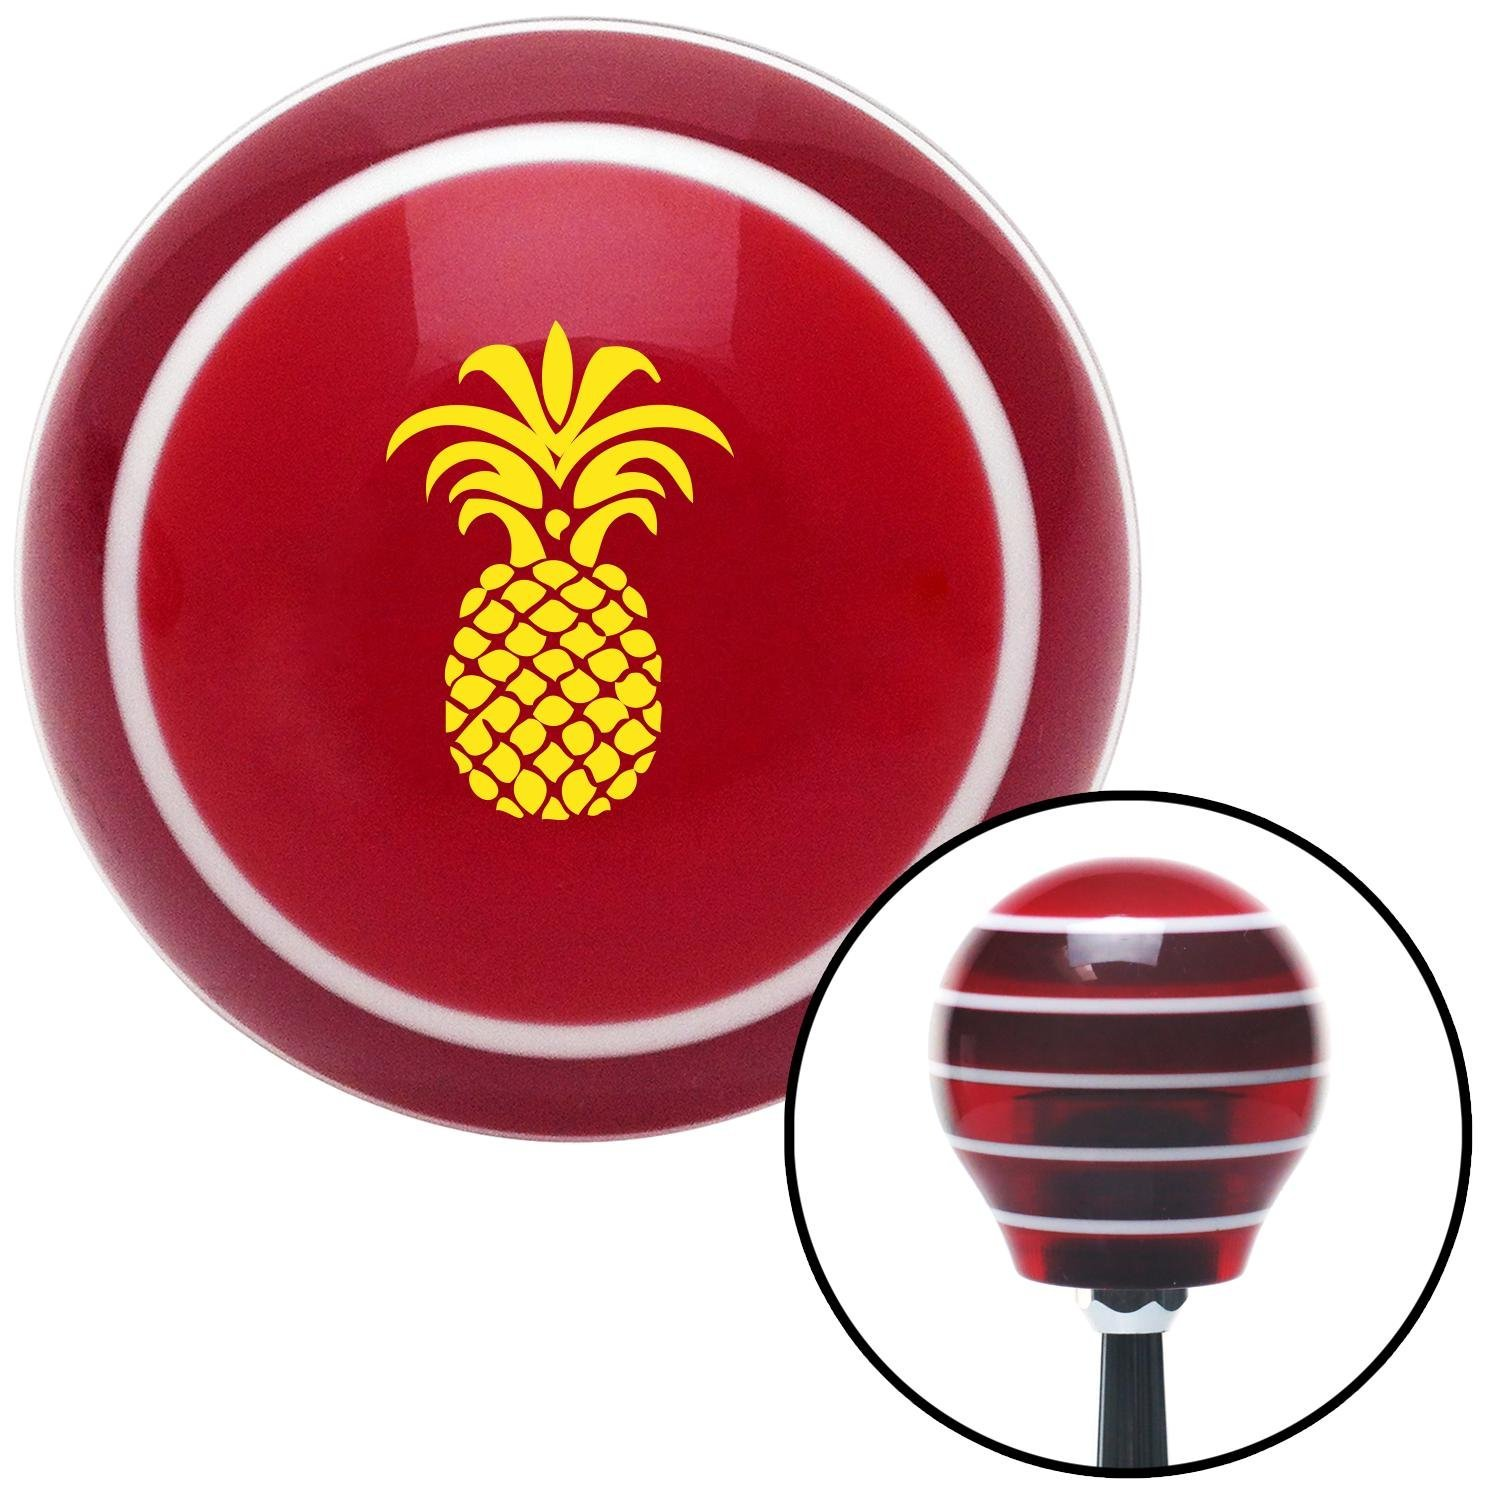 American Shifter 113066 Red Stripe Shift Knob with M16 x 1.5 Insert Yellow Pineapple